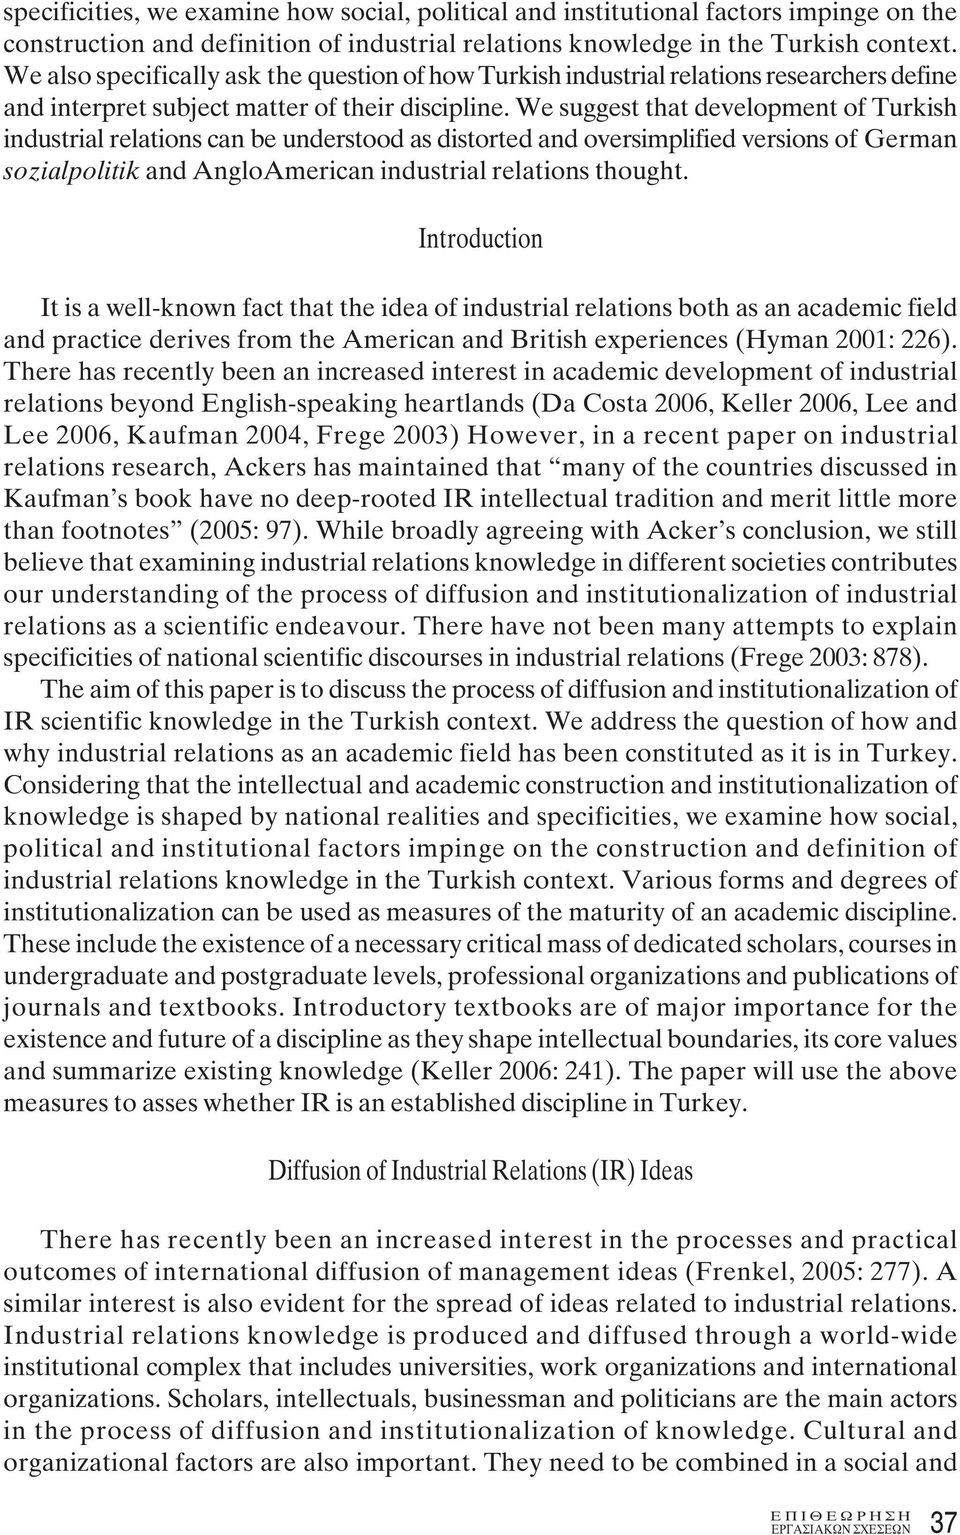 We suggest that development of Turkish industrial relations can be understood as distorted and oversimplified versions of German sozialpolitik and AngloAmerican industrial relations thought.